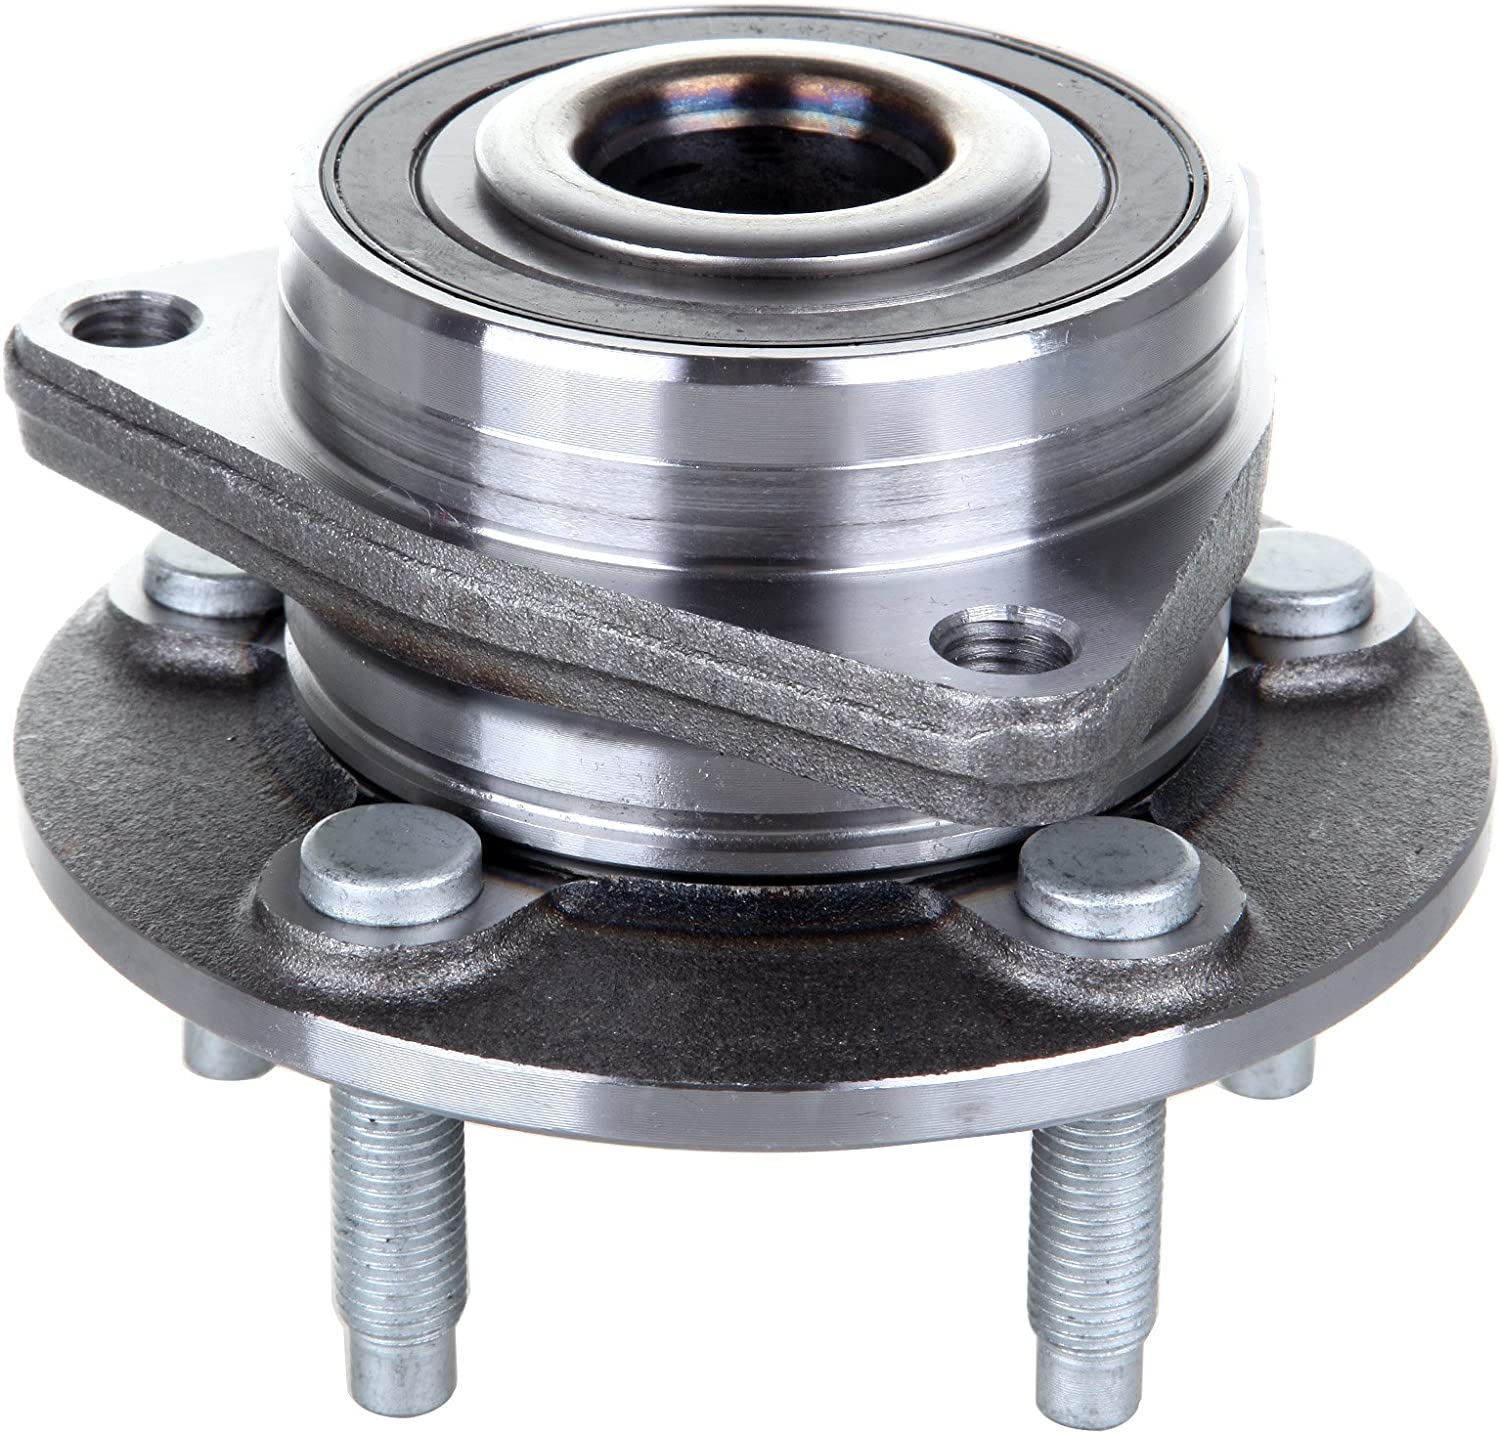 ECCPP Replacement For Jacksonville Mall Wheel A surprise price is realized Assem Bearing Hub 513315